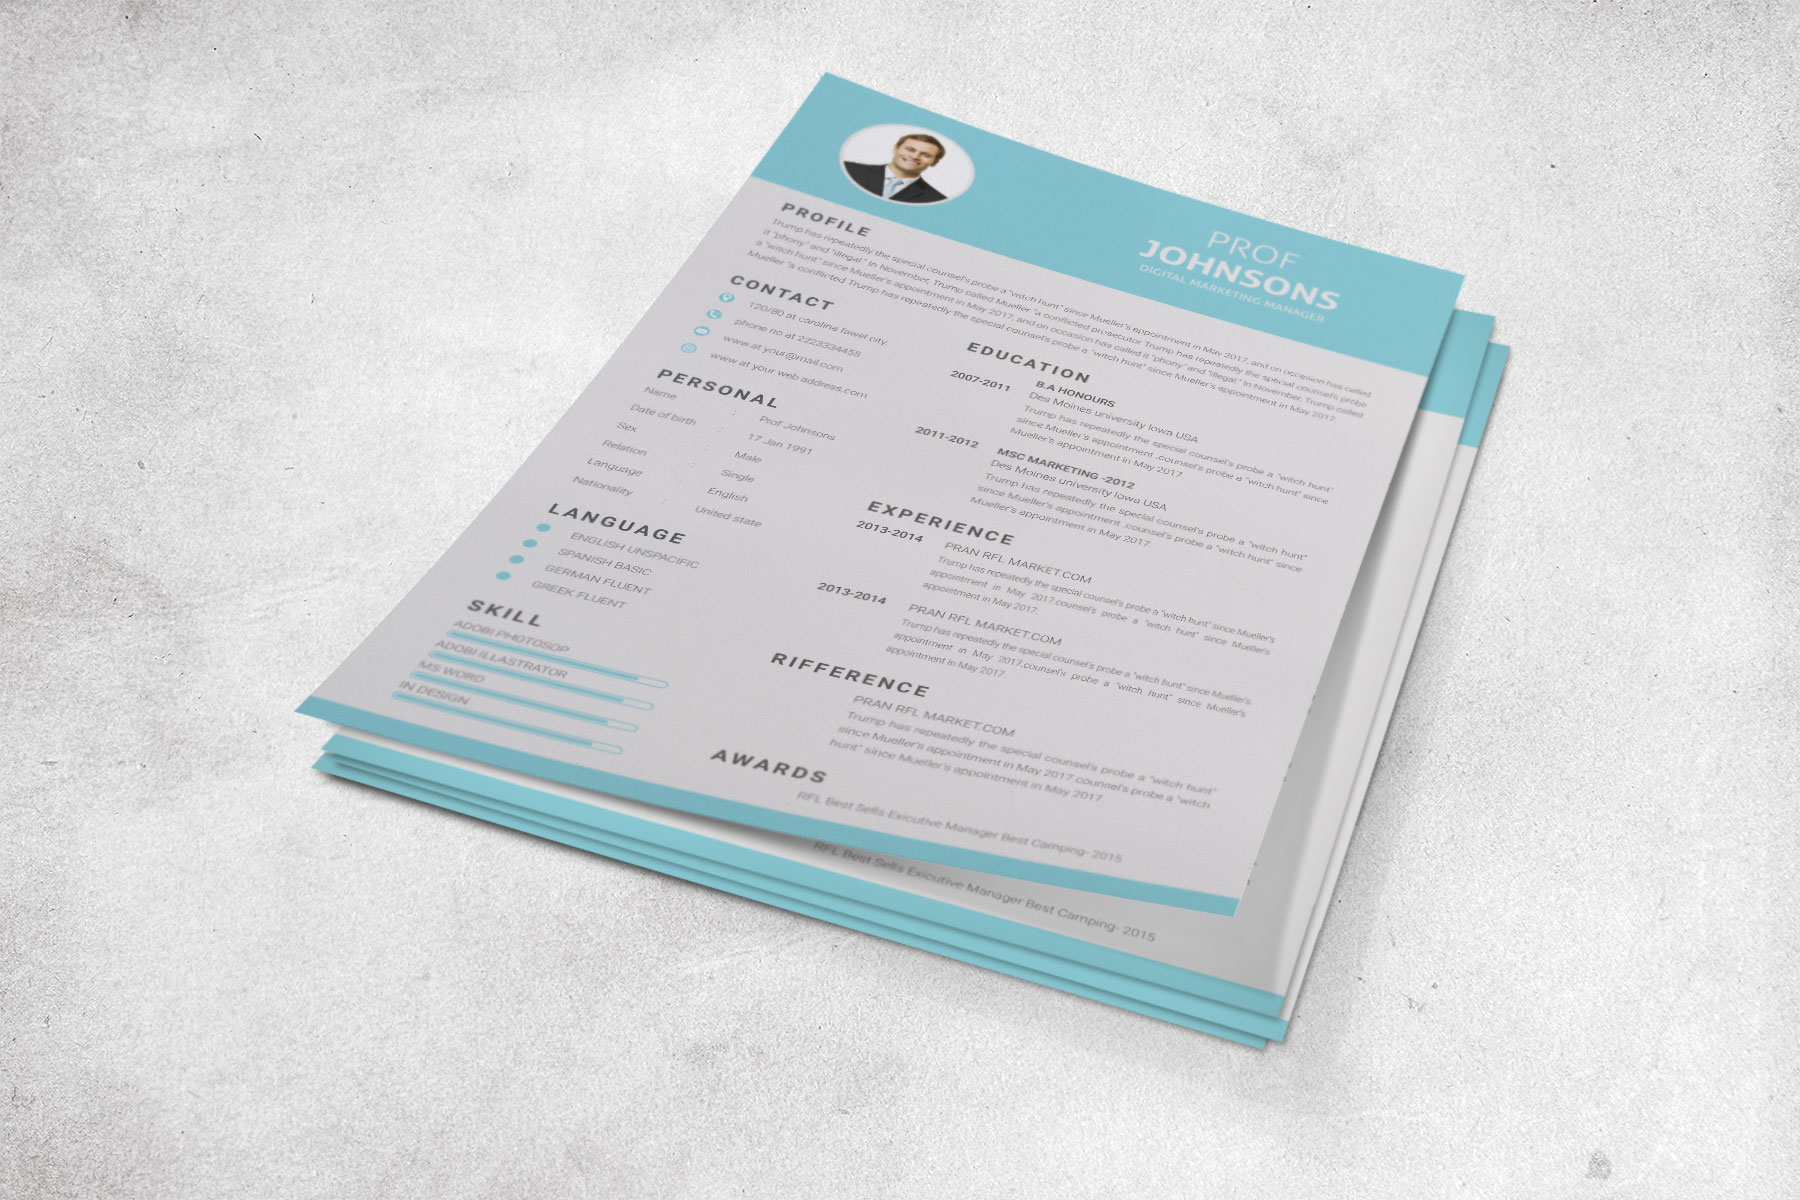 Professional Cv Resume Bonus business card Word/PSD,AI example image 8